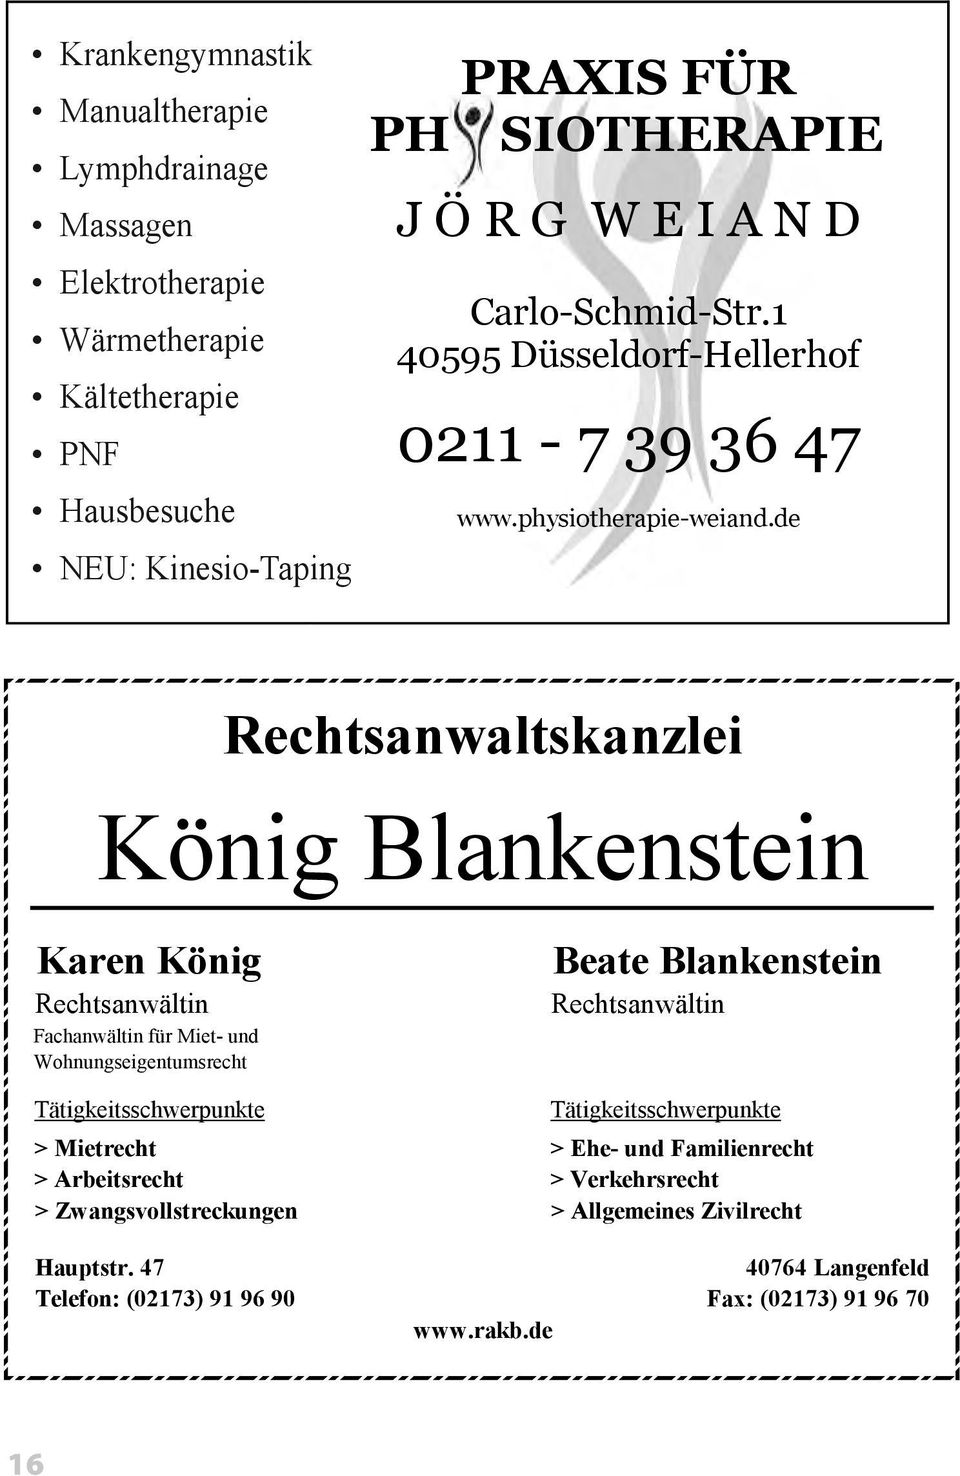 physiotherapie-weiand.